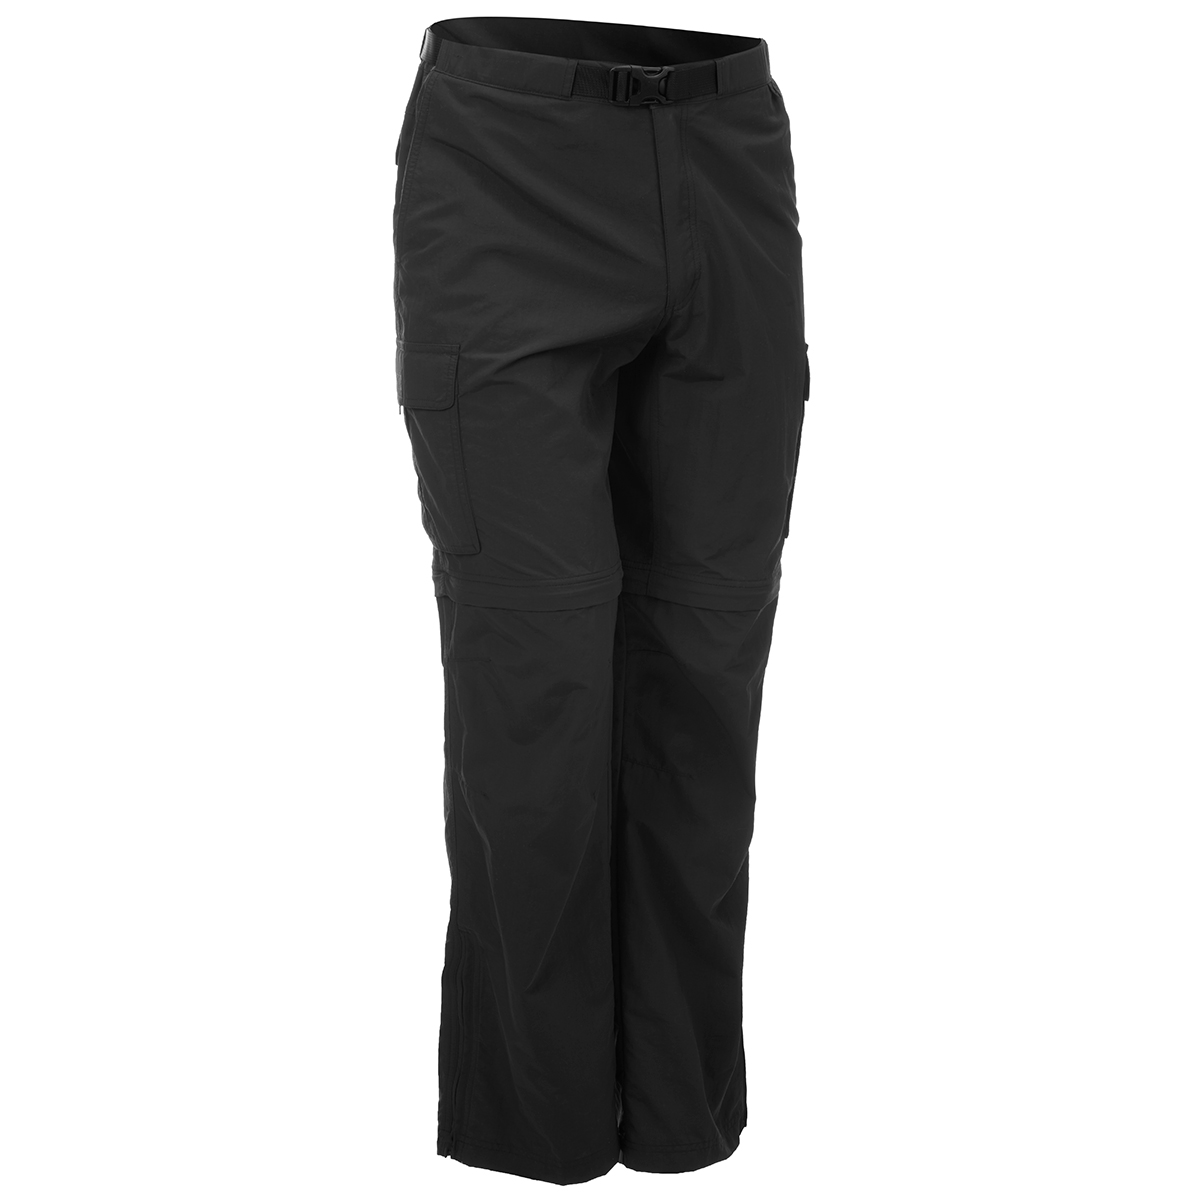 Ems Men's Camp Cargo Zip-Off Pants - Black, 38/30